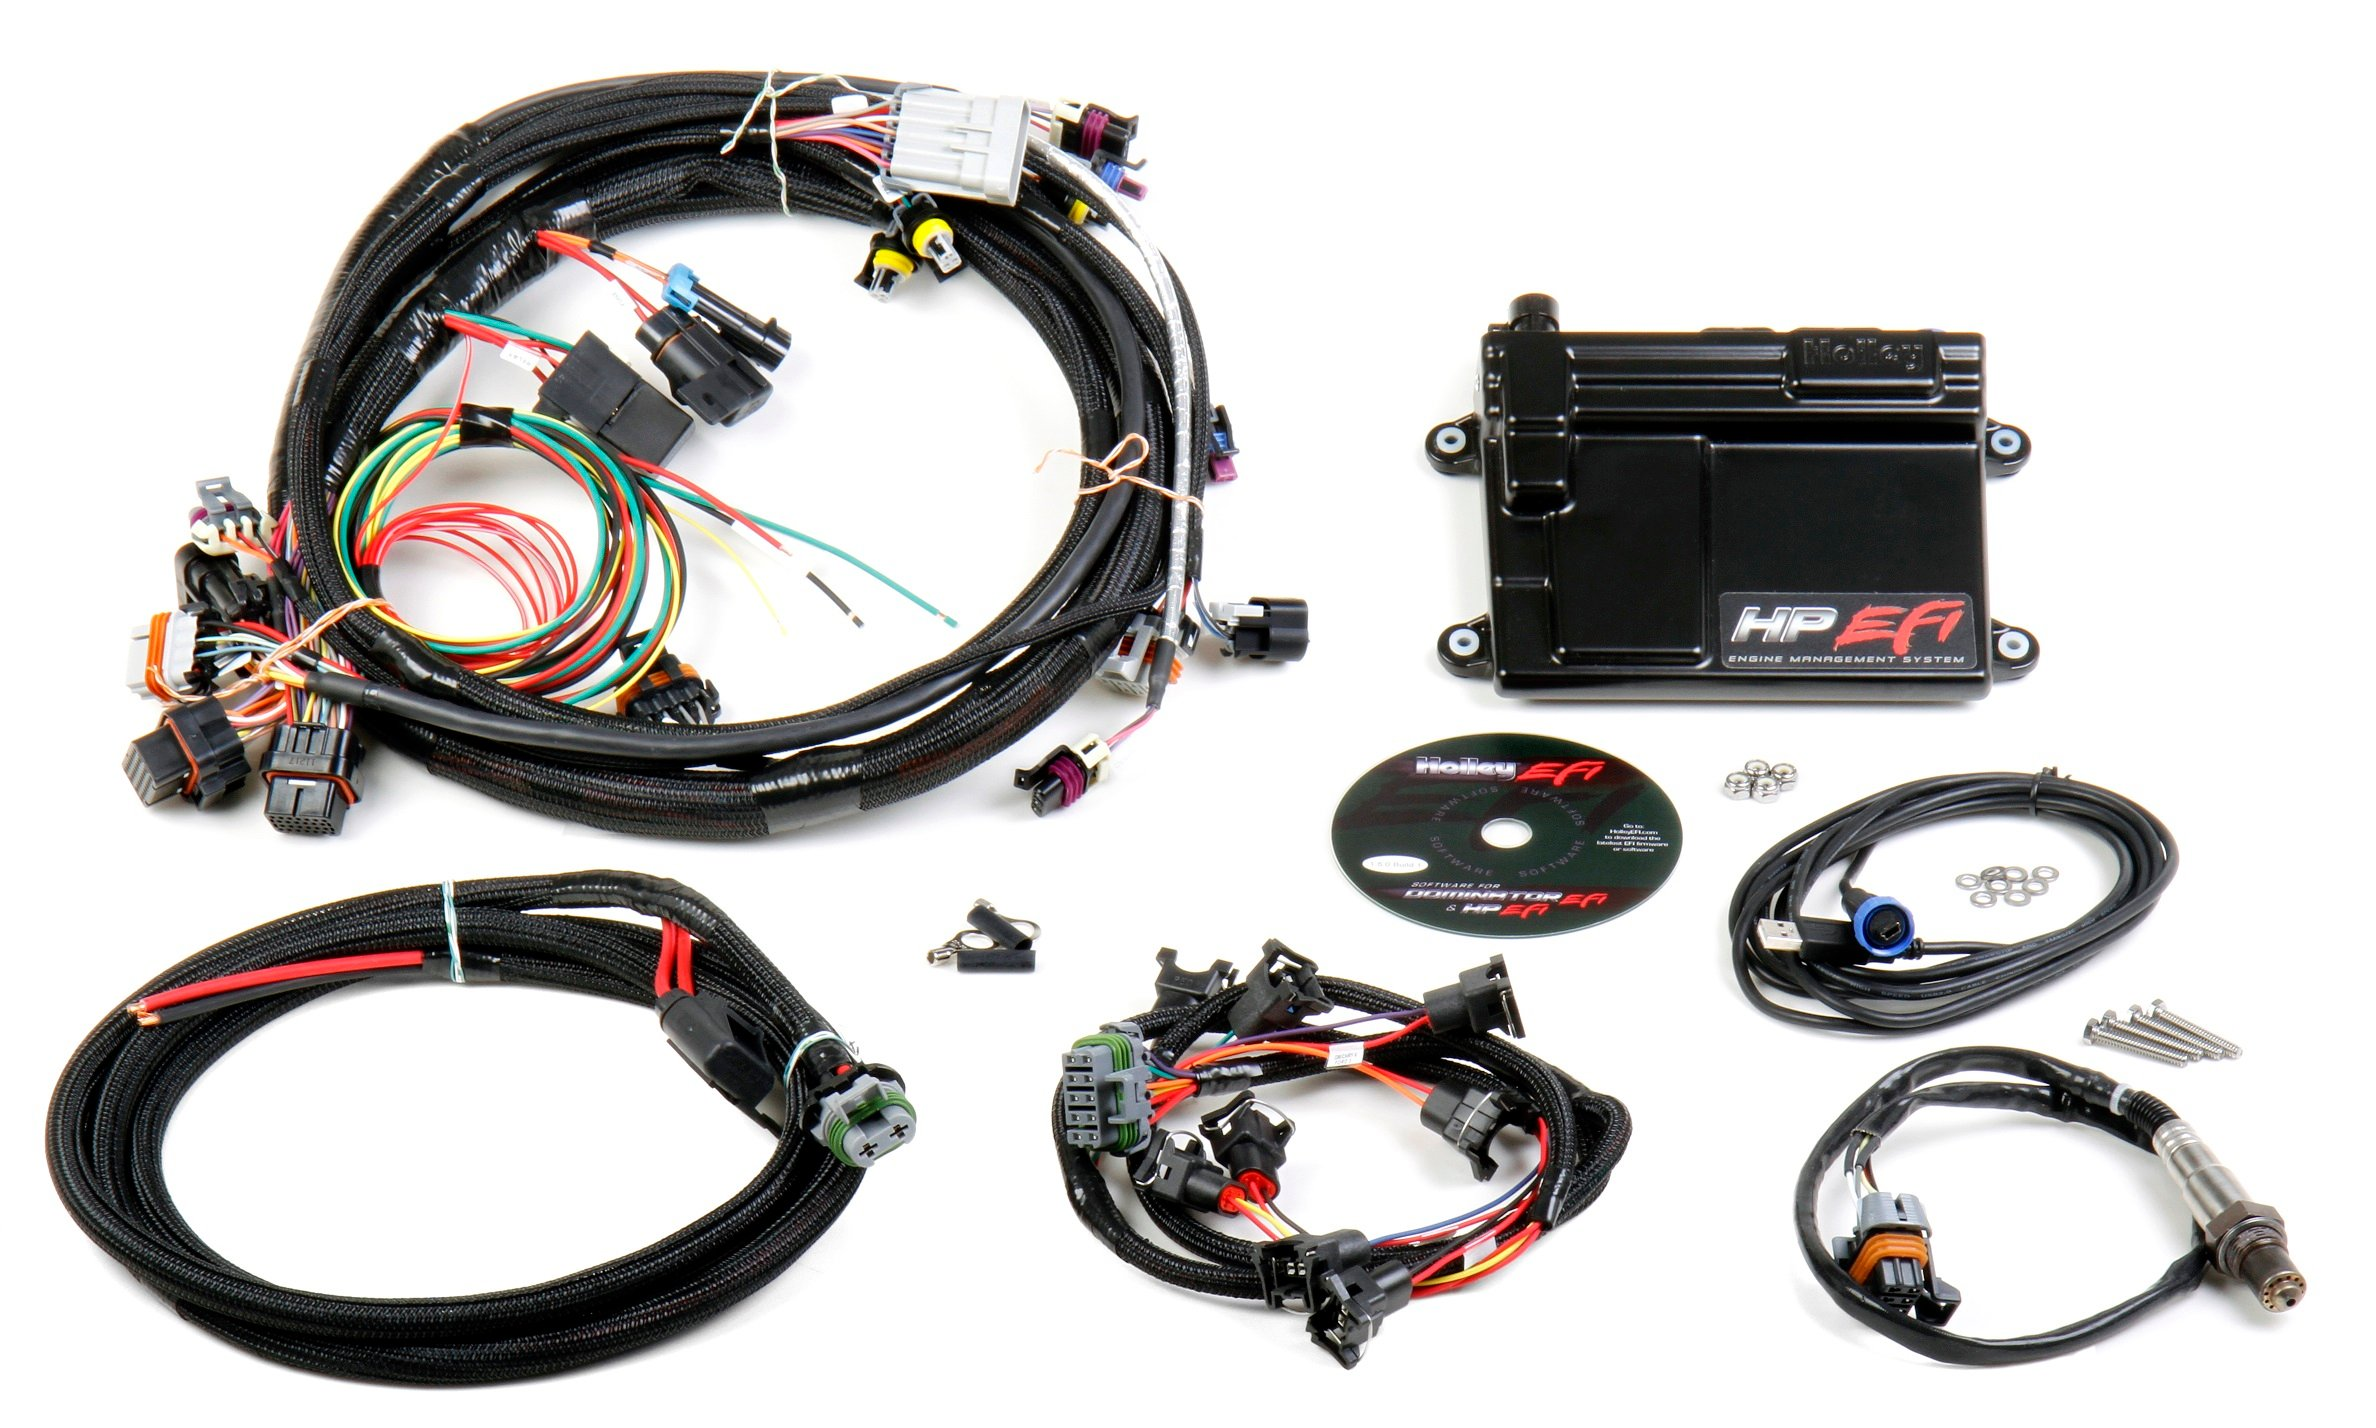 550 602 holley efi 550 602 hp efi ecu & harness kits engine wiring harness for sale at gsmportal.co